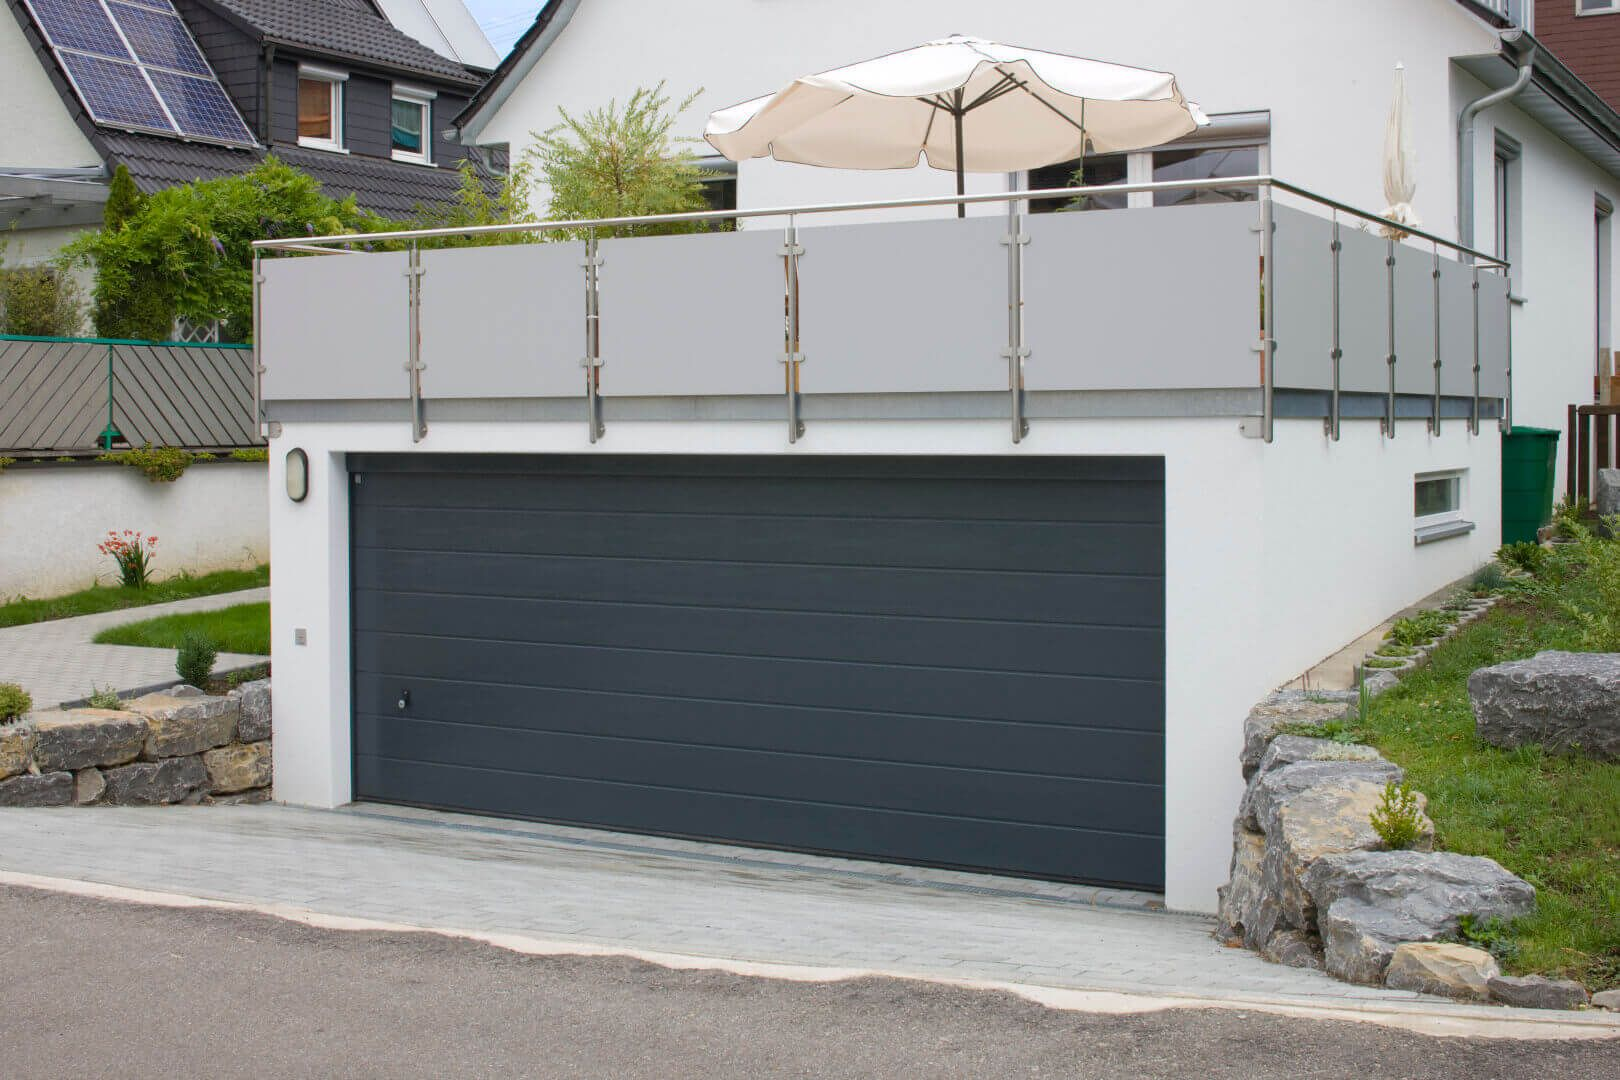 hang garage terassen garage als beton fertiggarage garage balkon in 2019 garage garage. Black Bedroom Furniture Sets. Home Design Ideas